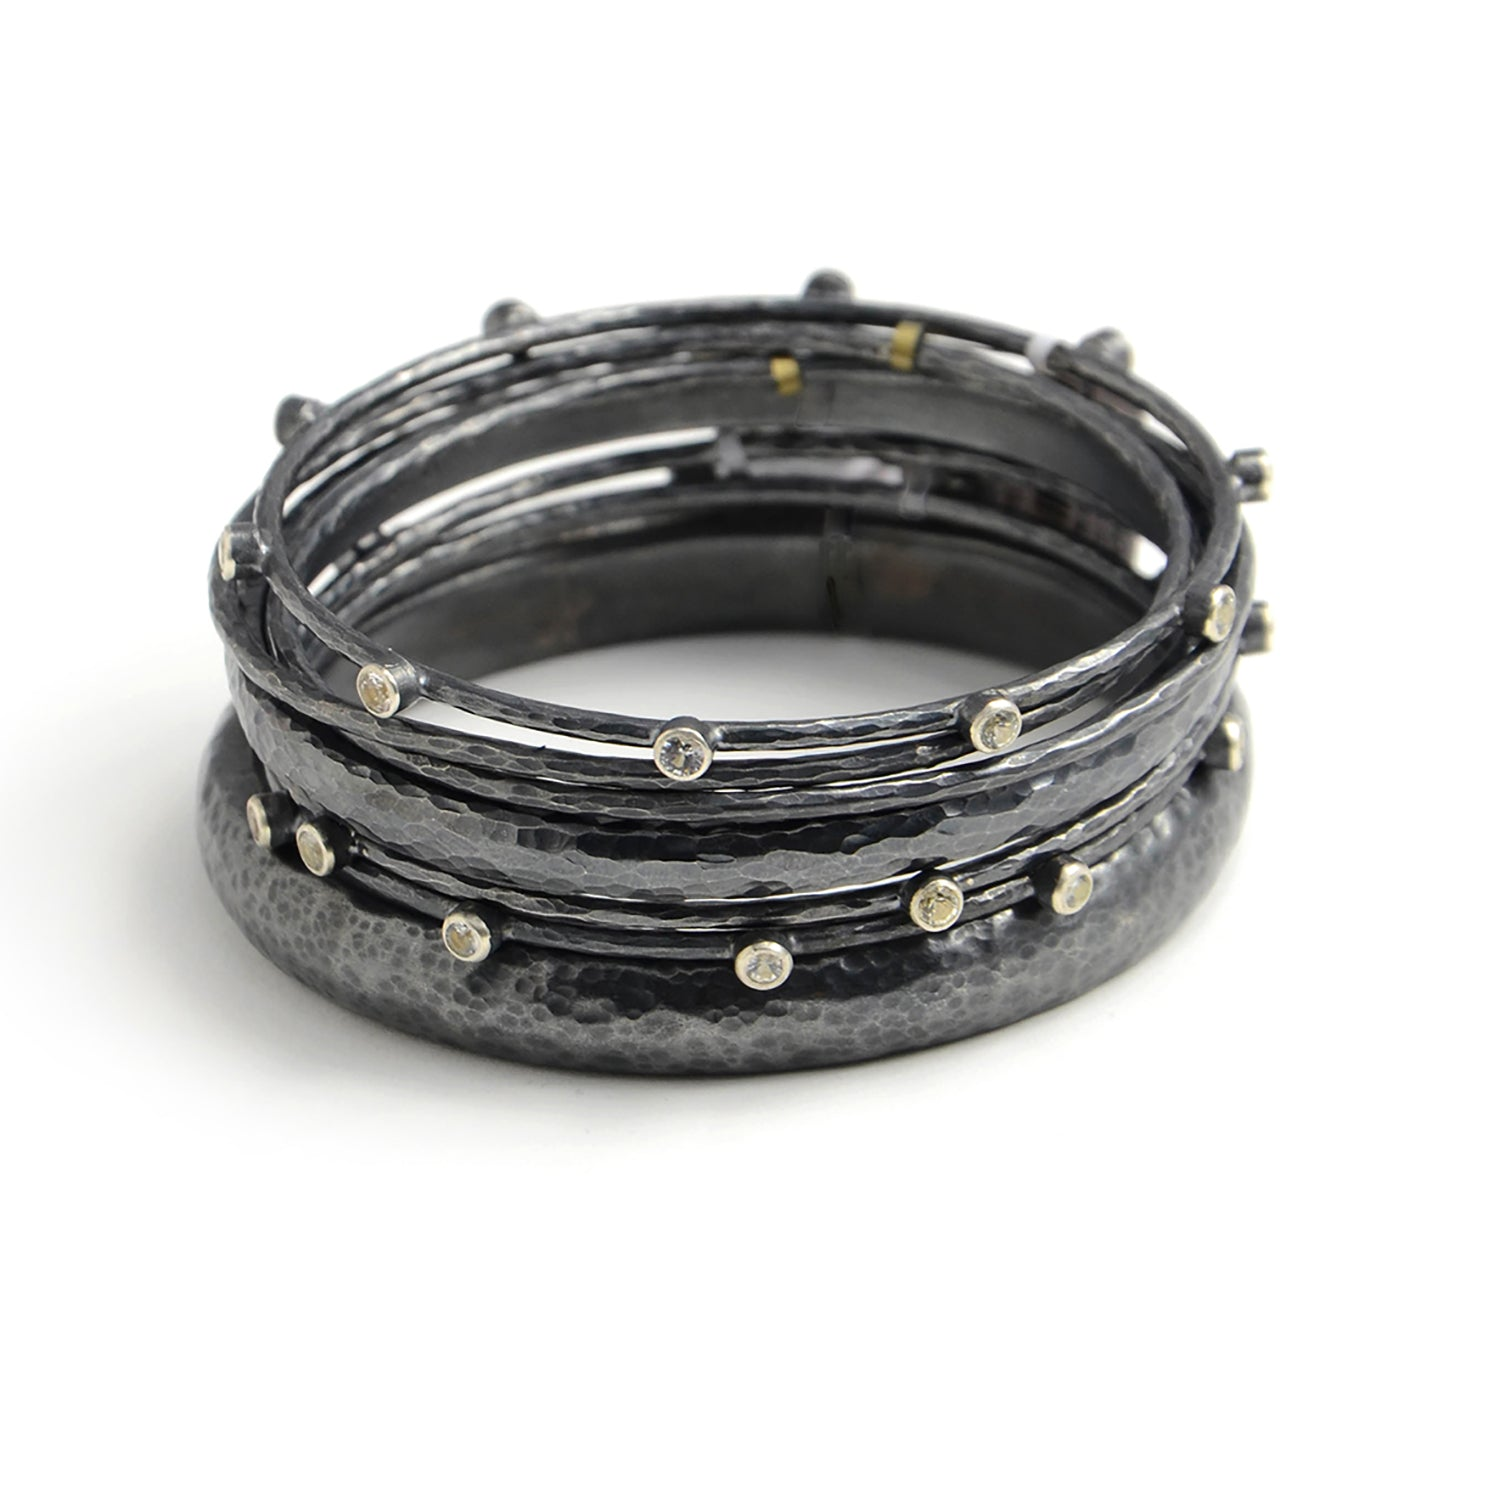 Narrow Oxidized Sterling Bangle, with or without White Sapphires